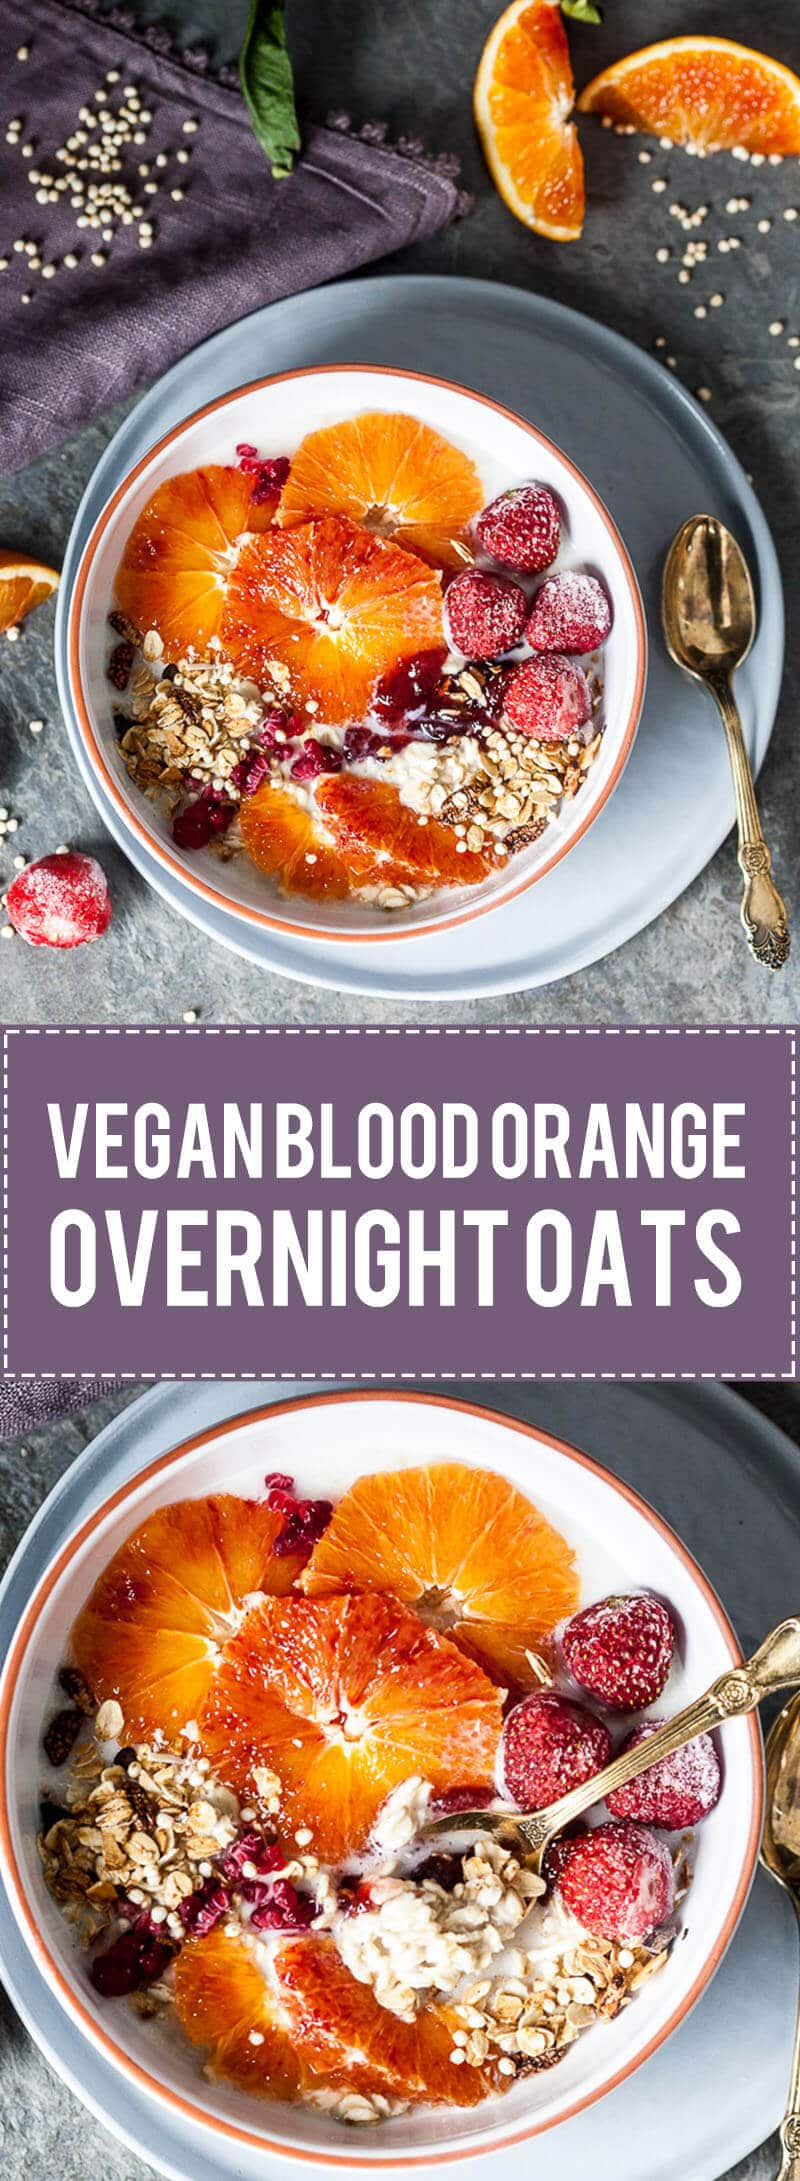 These Vegan Blood Orange Overnight Oats are an easy weekday breakfast that will keep you full and healthy.